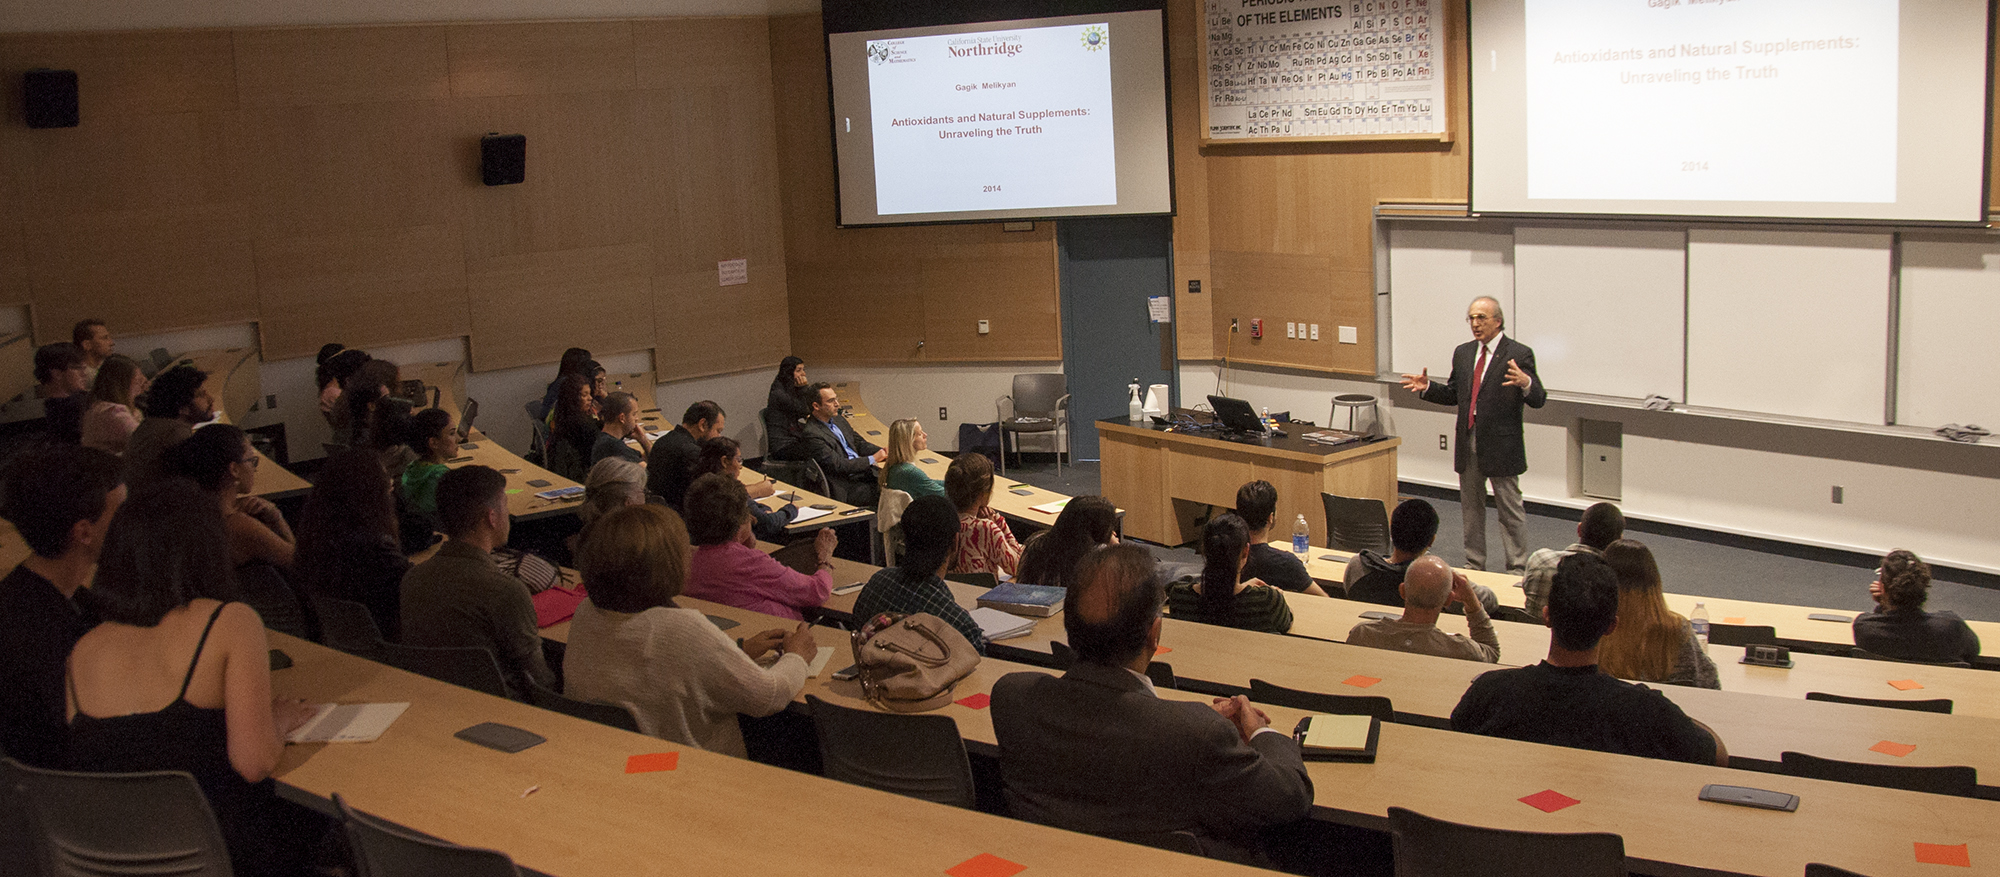 Chemistry professor gives lecture on the dangers of antioxidants